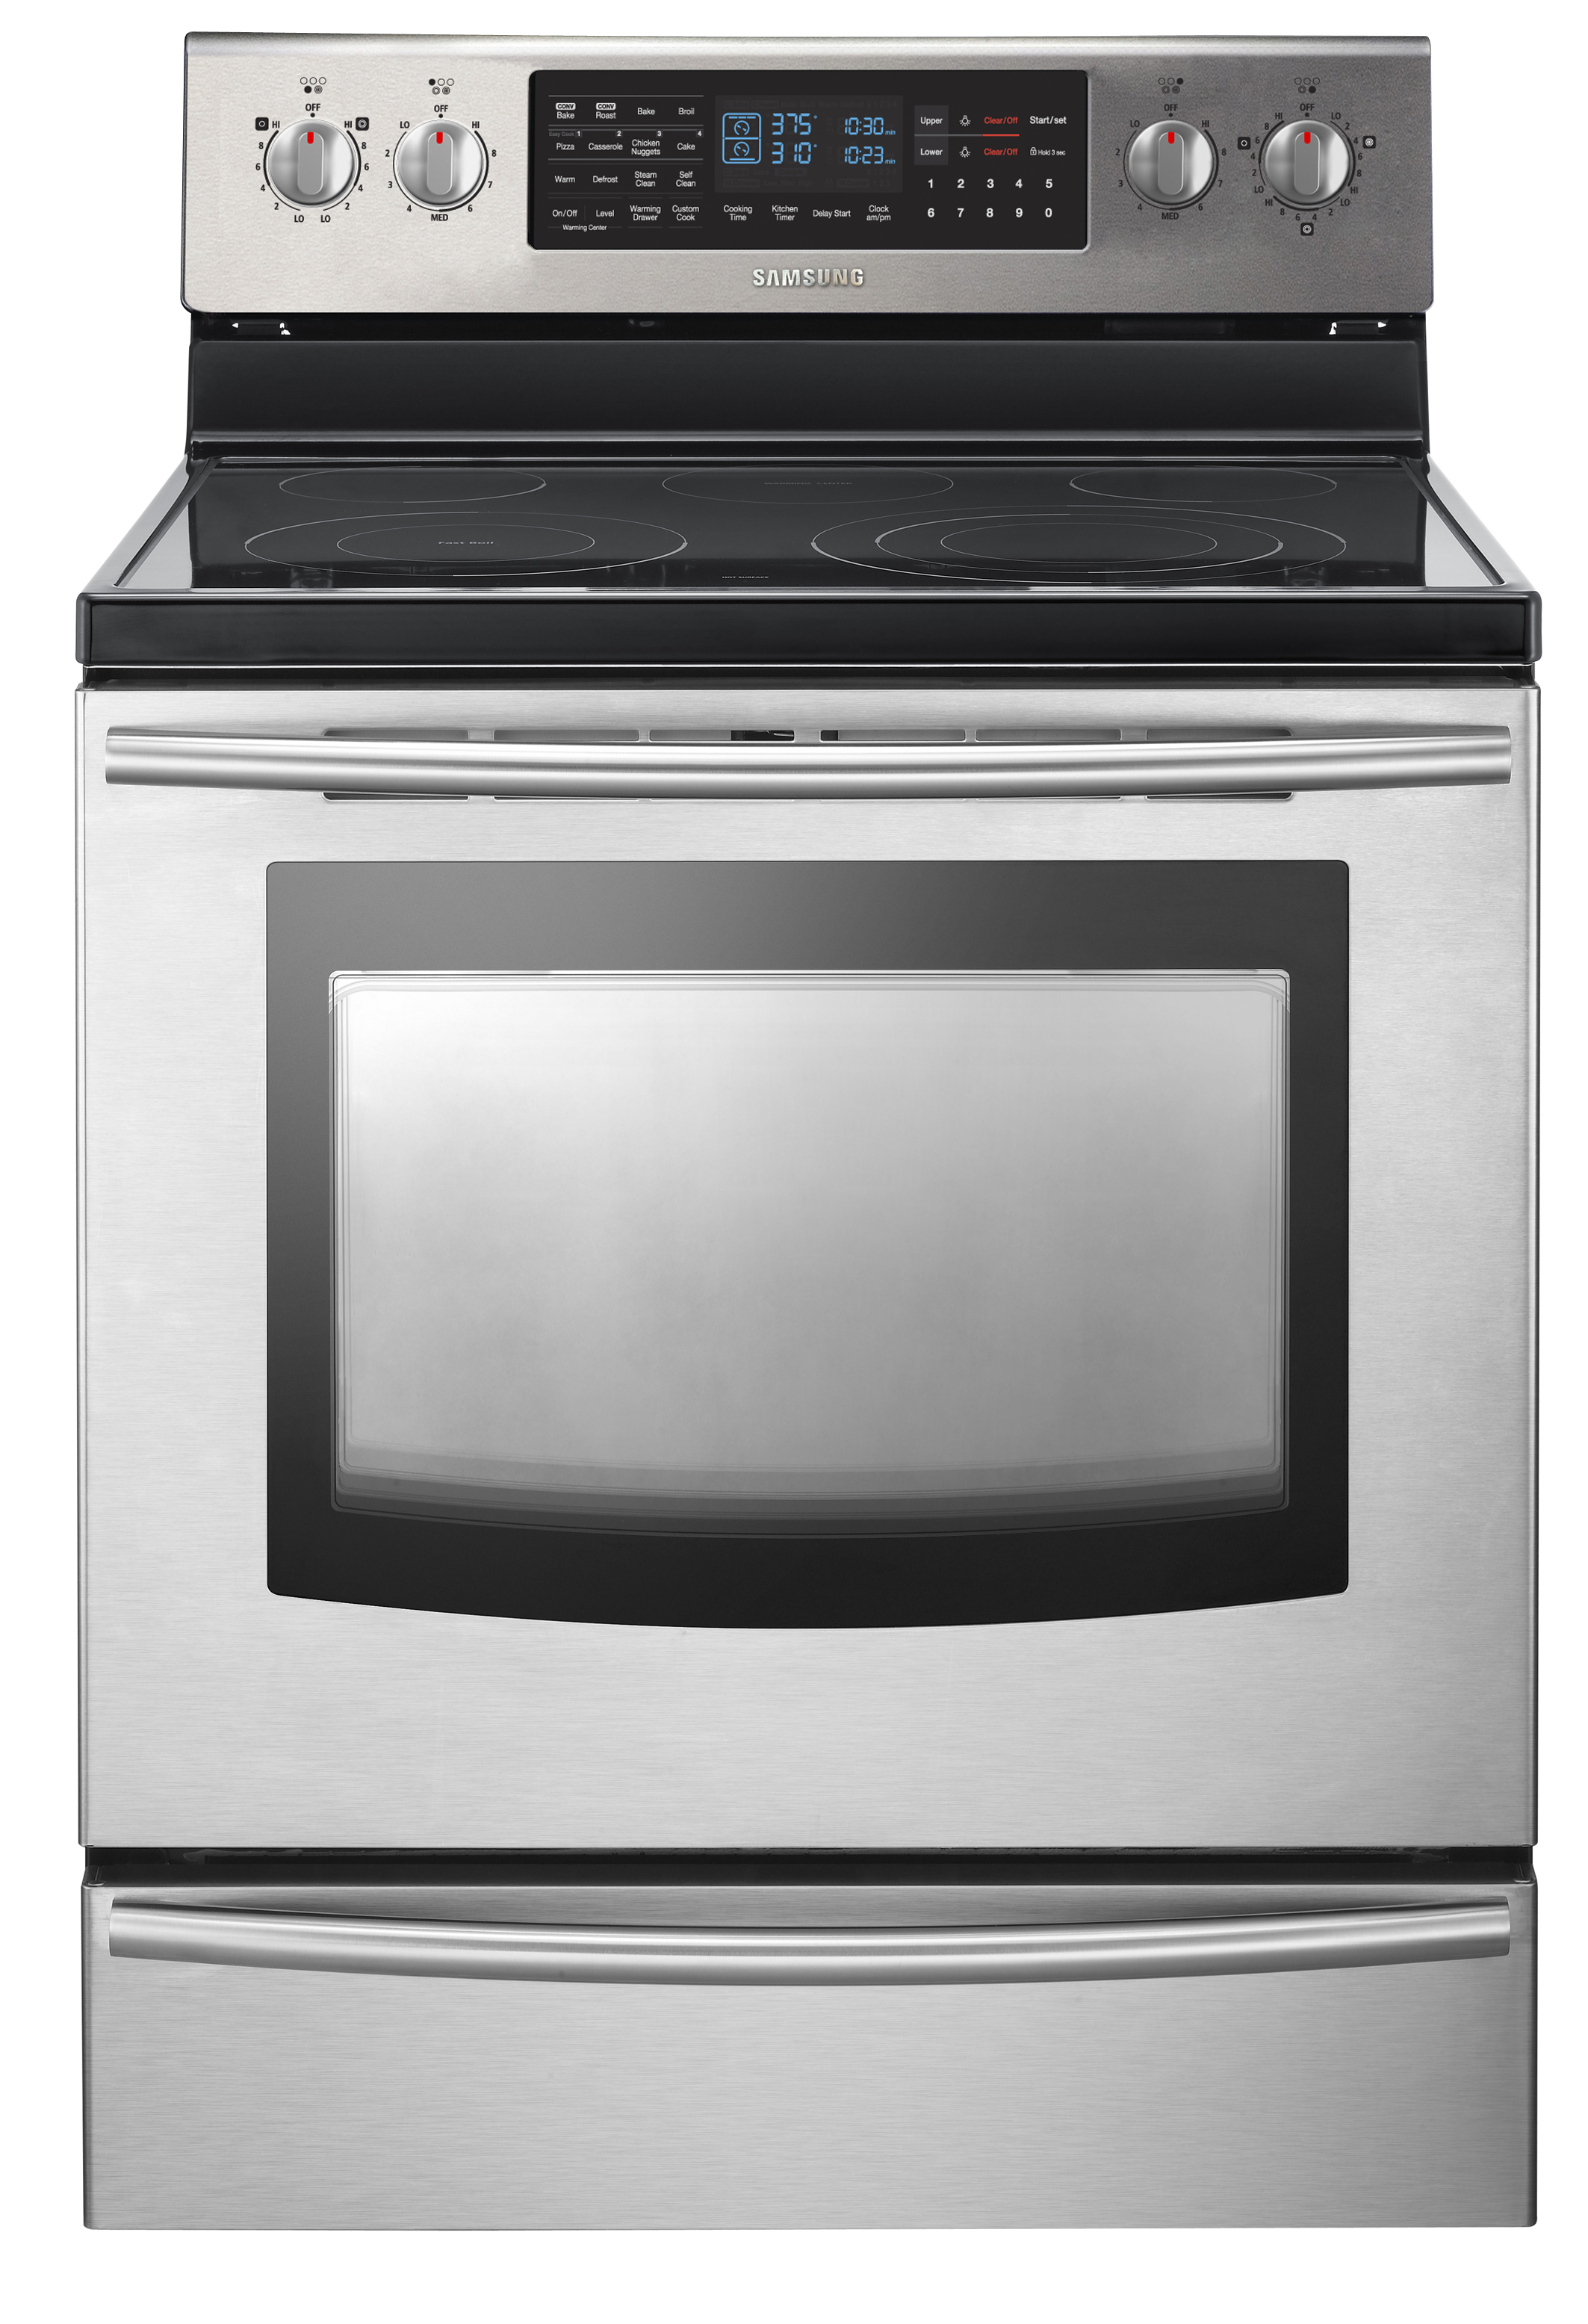 The Samsung FE710DRS Flex Oven hides a secret.